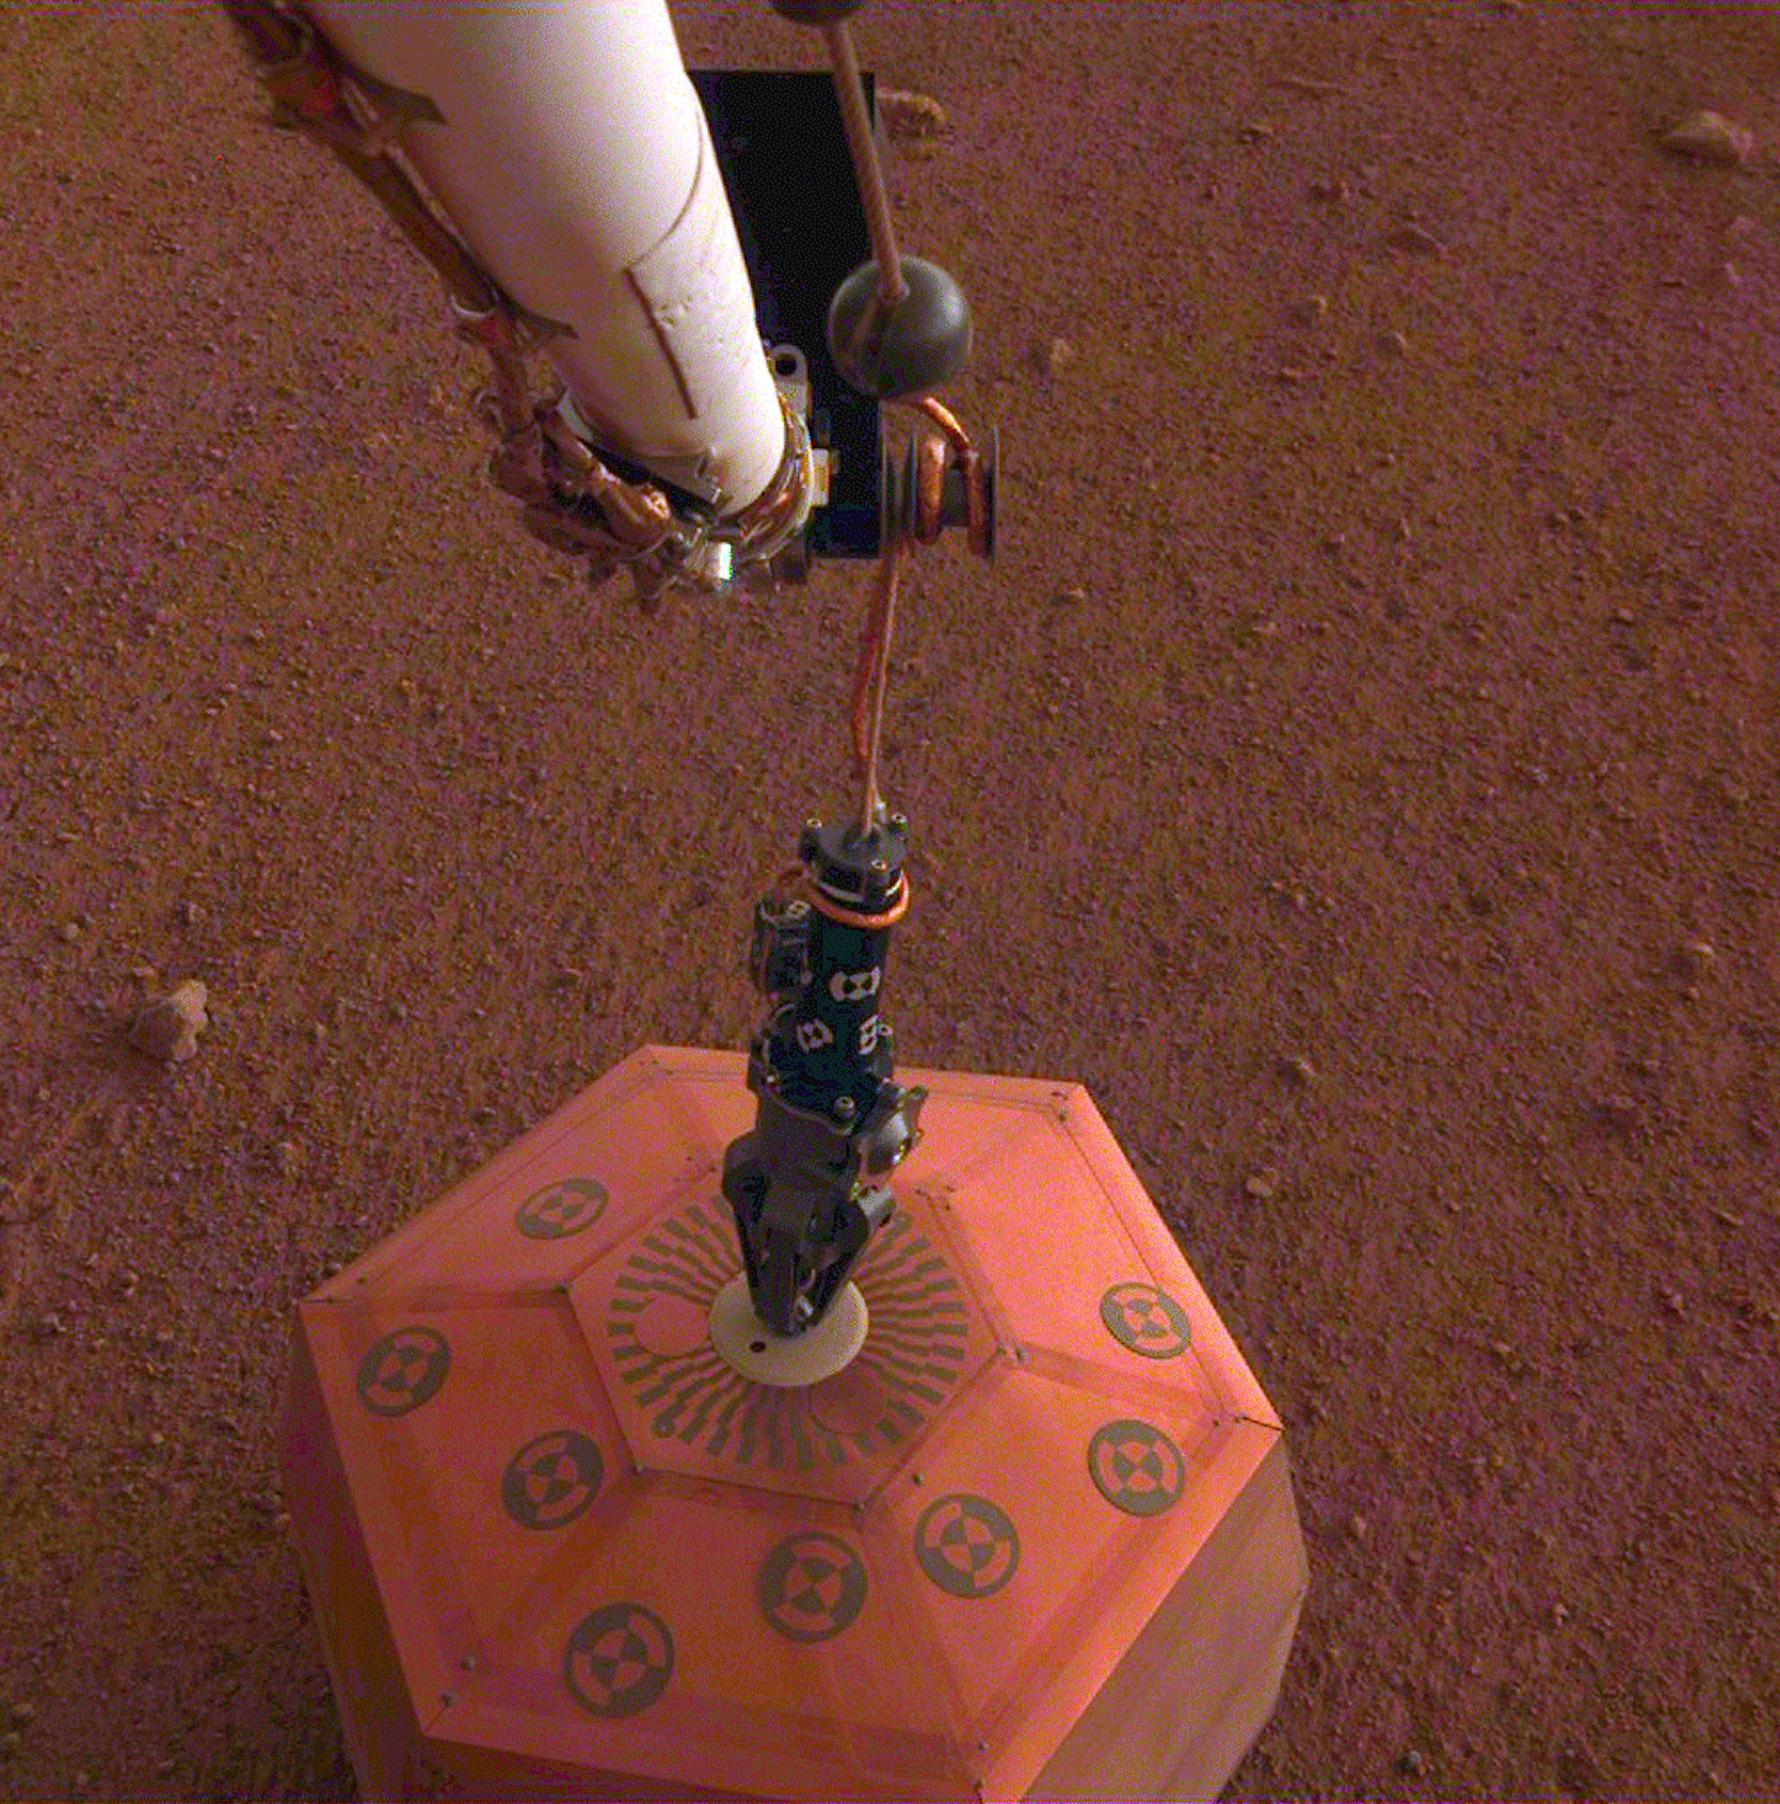 This set of images from the Instrument Deployment Camera shows NASAs InSight lander placing its first instrument onto the surface of Mars, completing a major mission milestone.